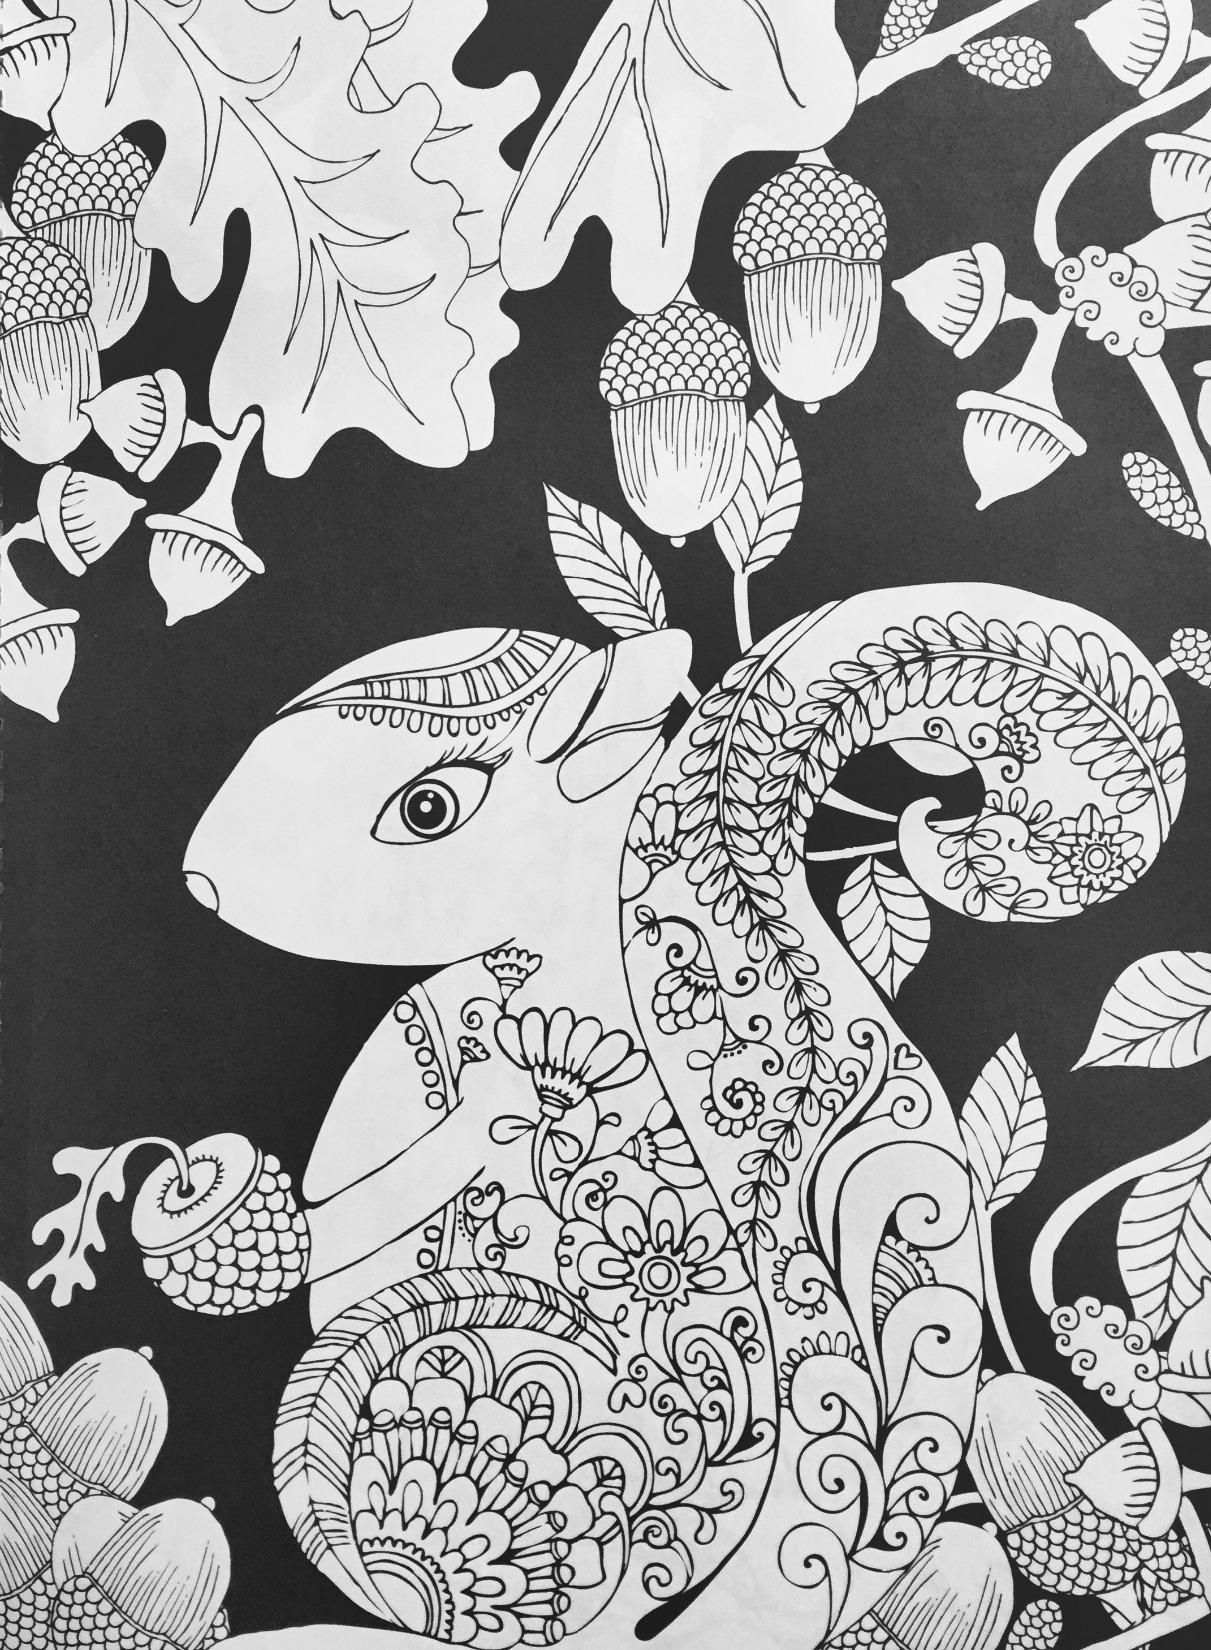 Amazon Com Creative Haven Midnight Forest Coloring Book Animal Designs On A Dramatic Black Backgrou Animal Coloring Books Forest Coloring Book Coloring Books